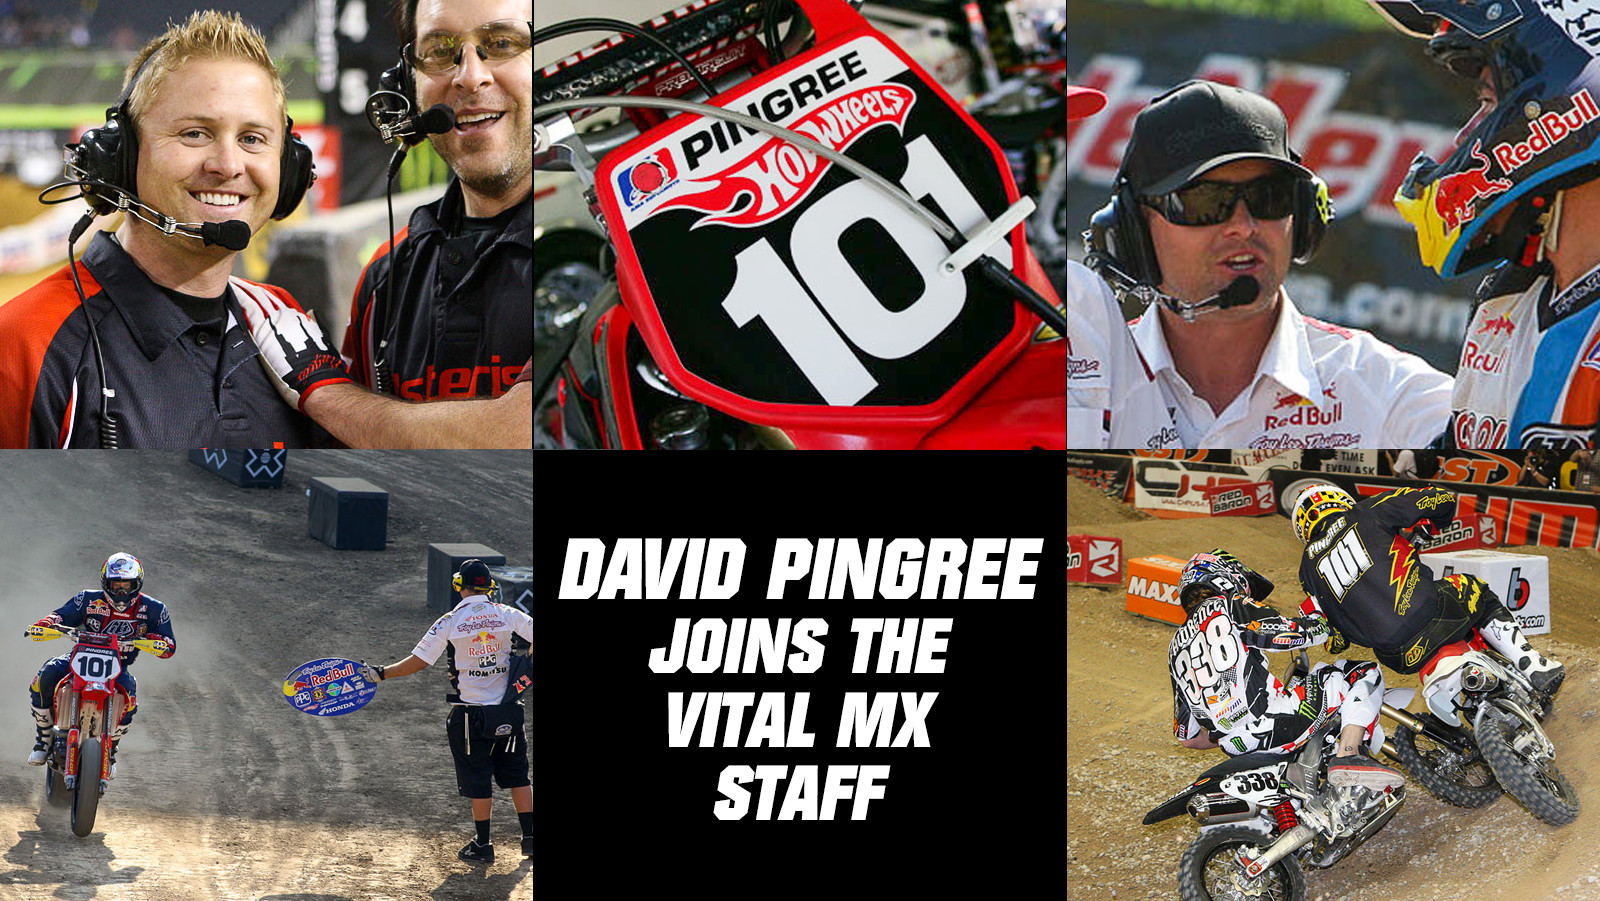 David Pingree Joins The Vital MX Staff